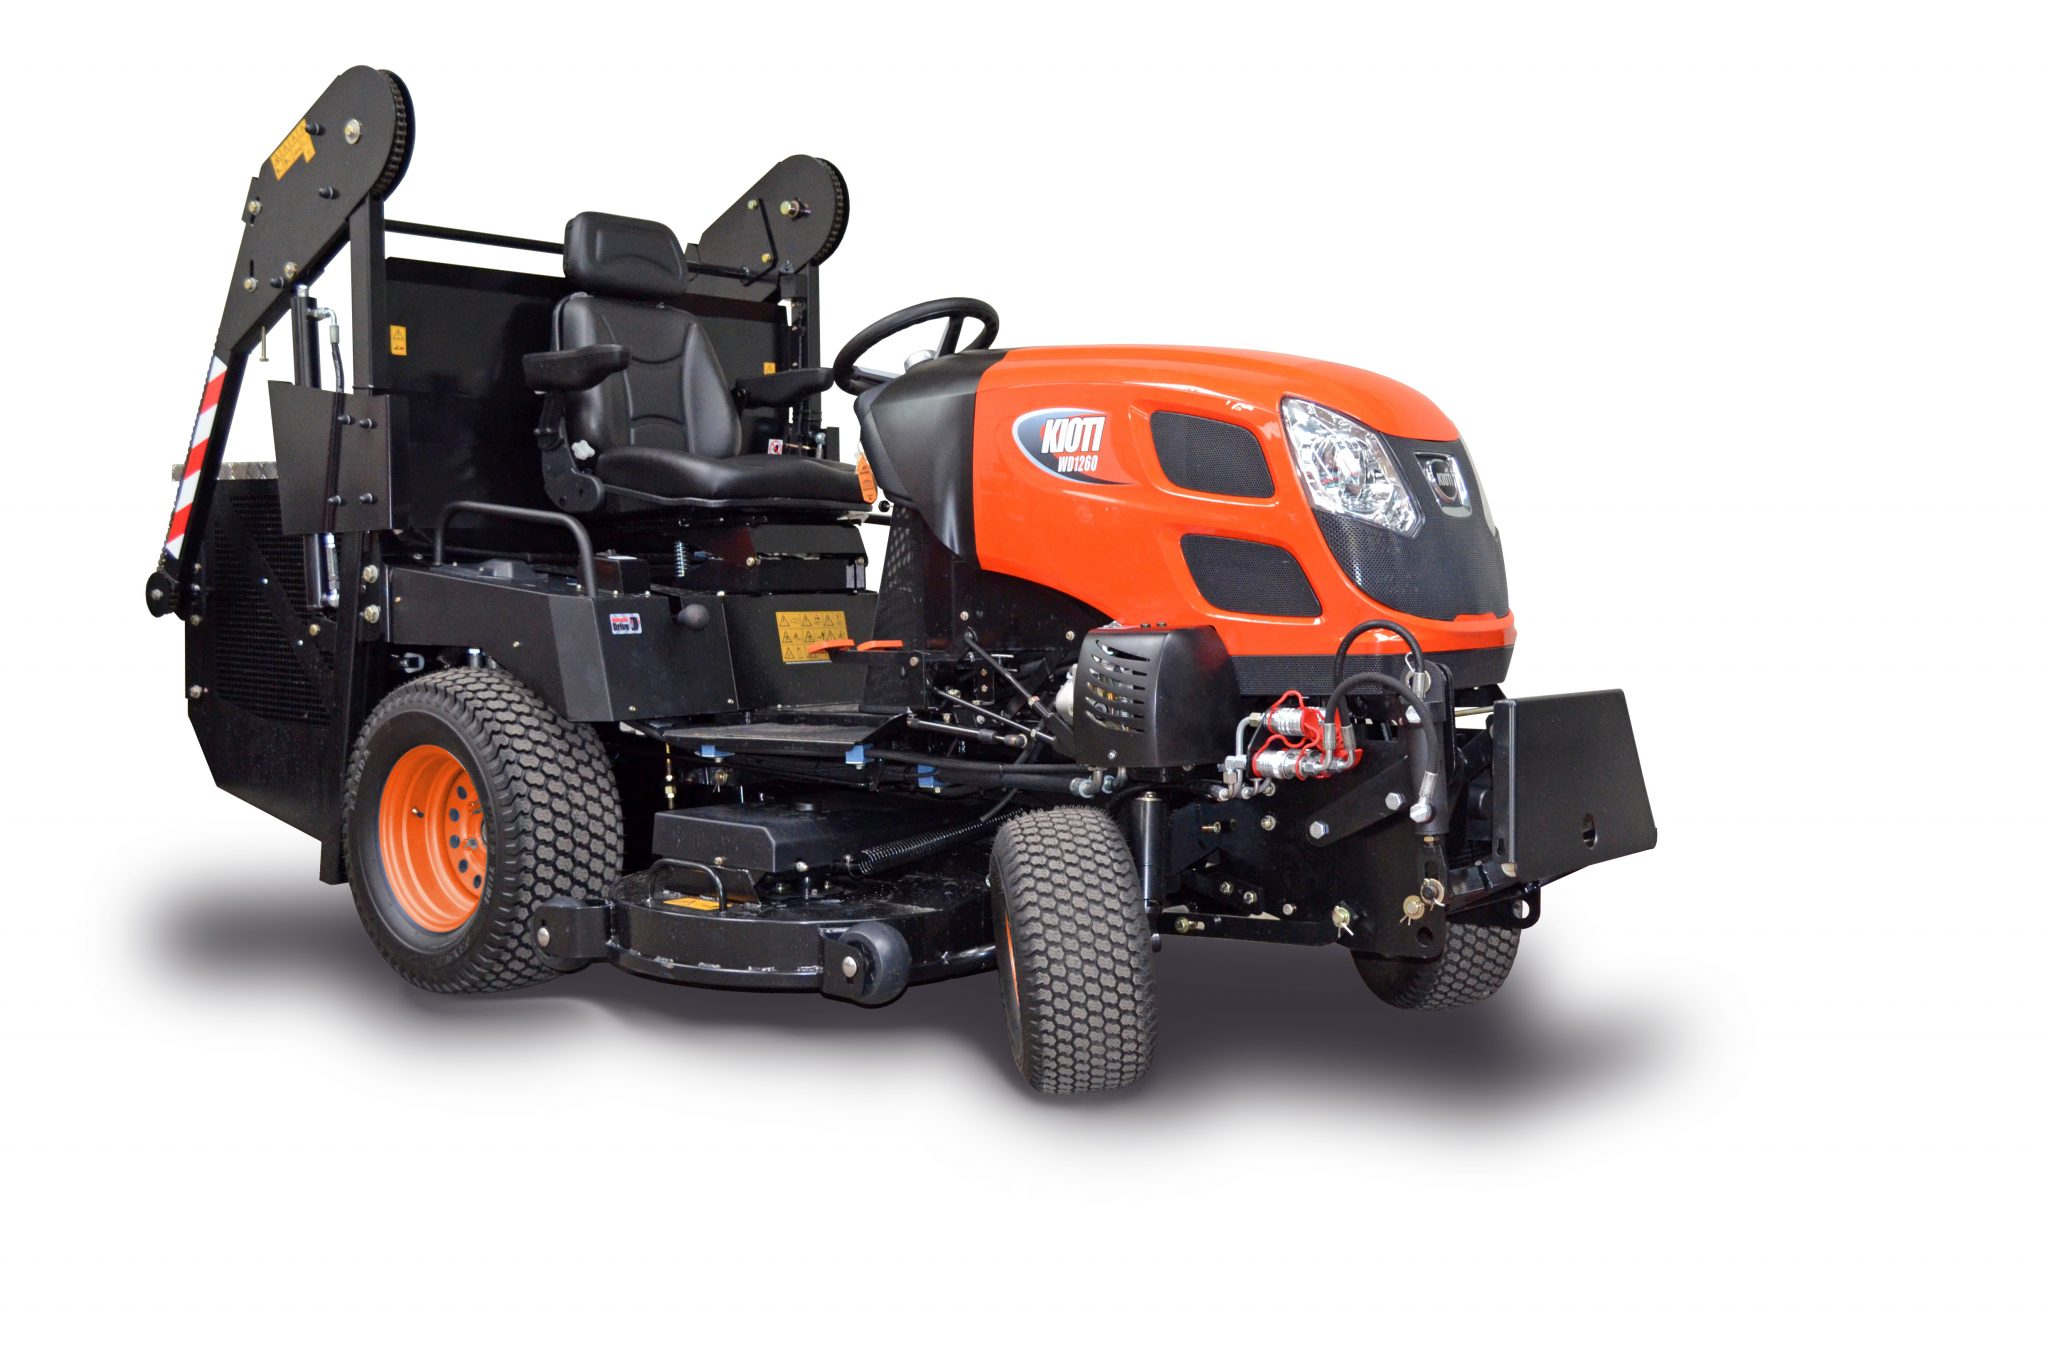 Kioti WD1260 Ride-on Mower Image